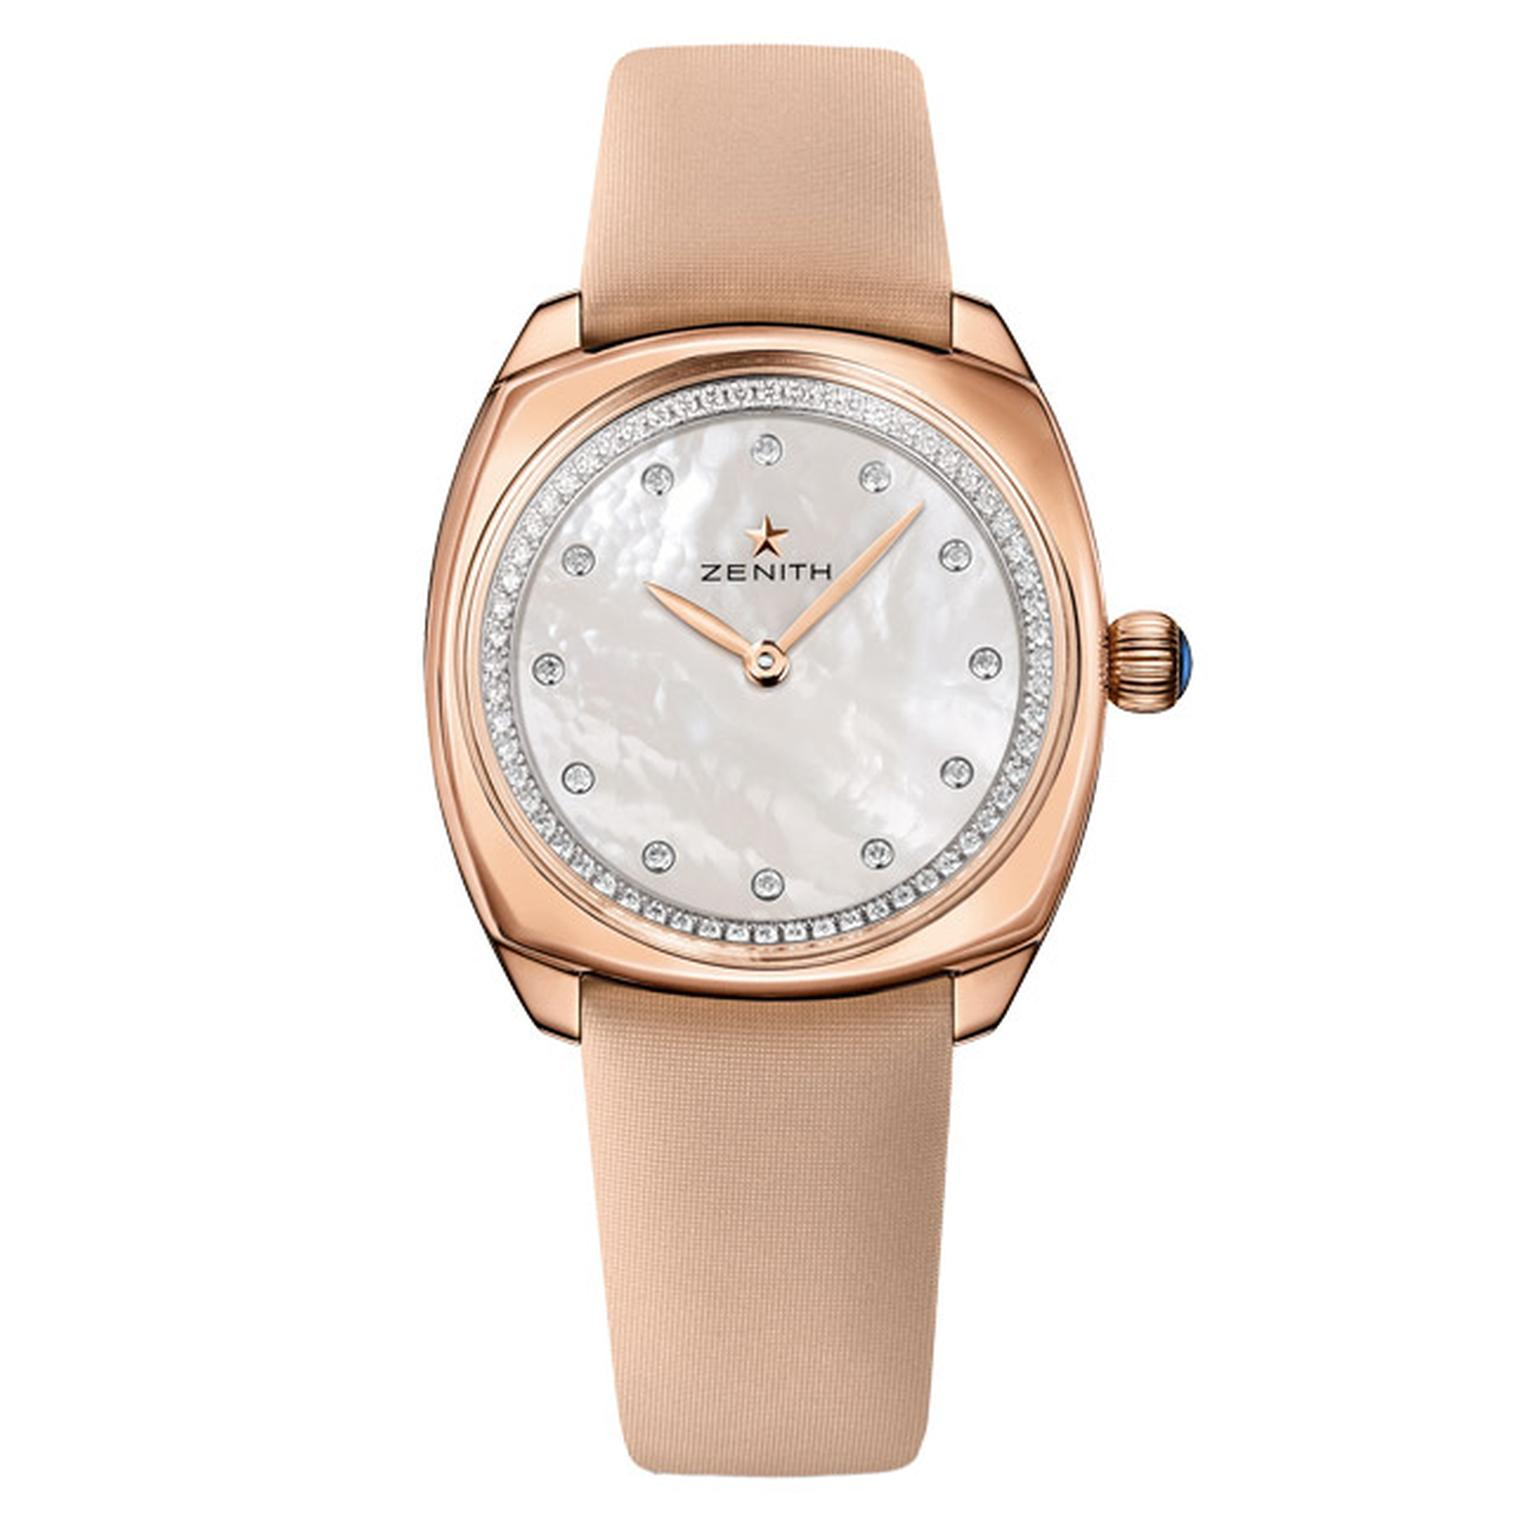 Zenith-Star-Rose-Gold-main